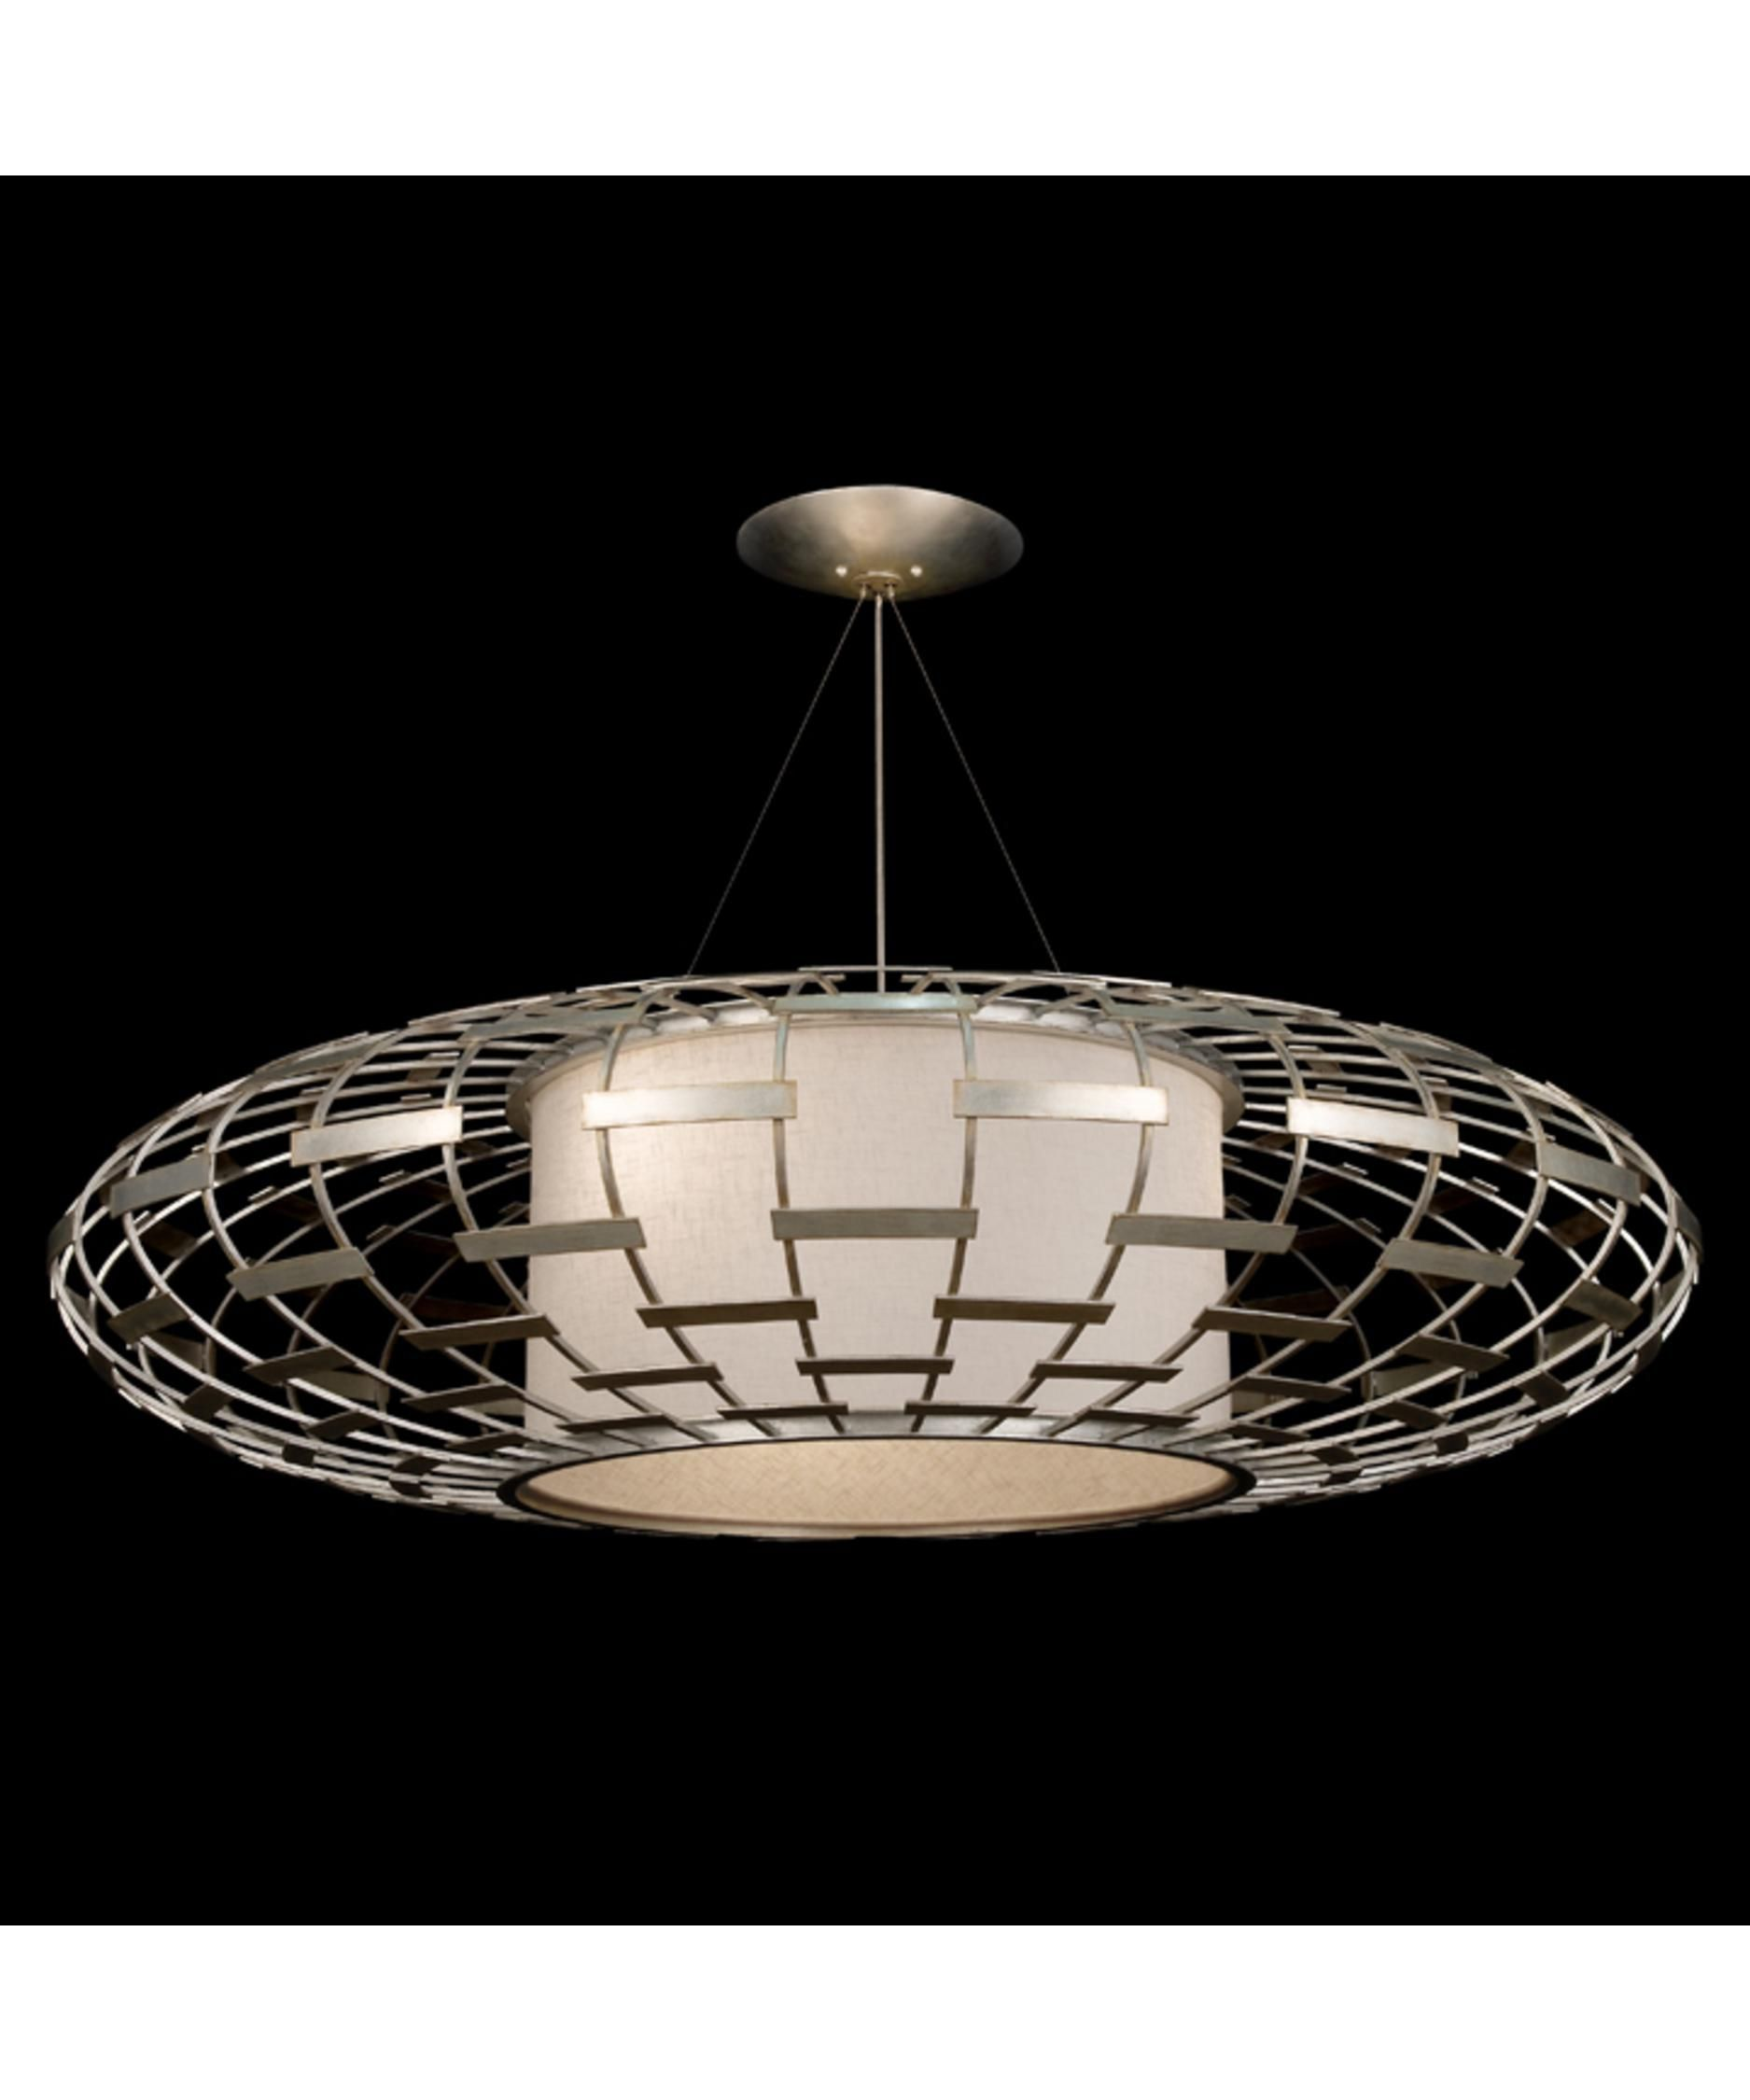 Fine Art Lamps 798640 Allegretto 54 Inch Large Pendant | Capitol Lighting 1  800lighting. Pictures Gallery